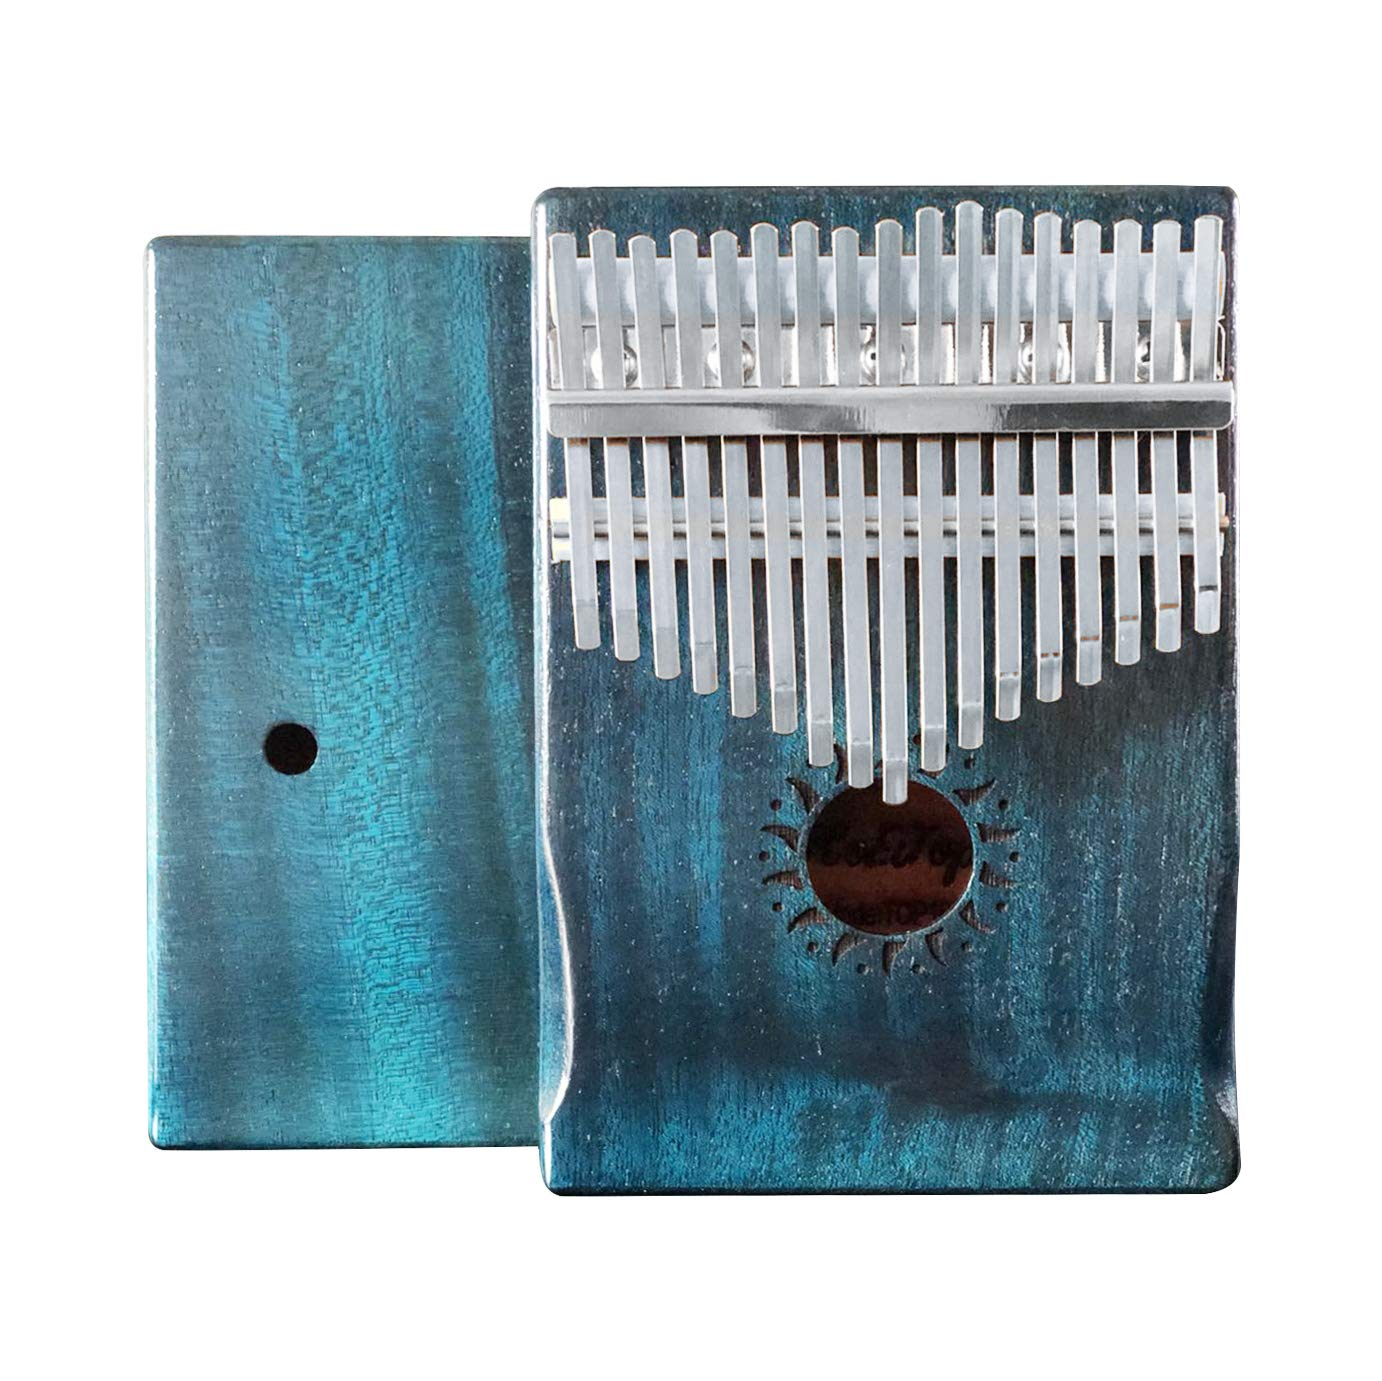 KoEiTop Kalimba 17 Keys Thumb Piano -Unique Blue Color and Hand-rest Curve Design Retro style tuning hammer and study instruction. Artwork, thick solid wood, dried wood for more than 2 years (Spruce